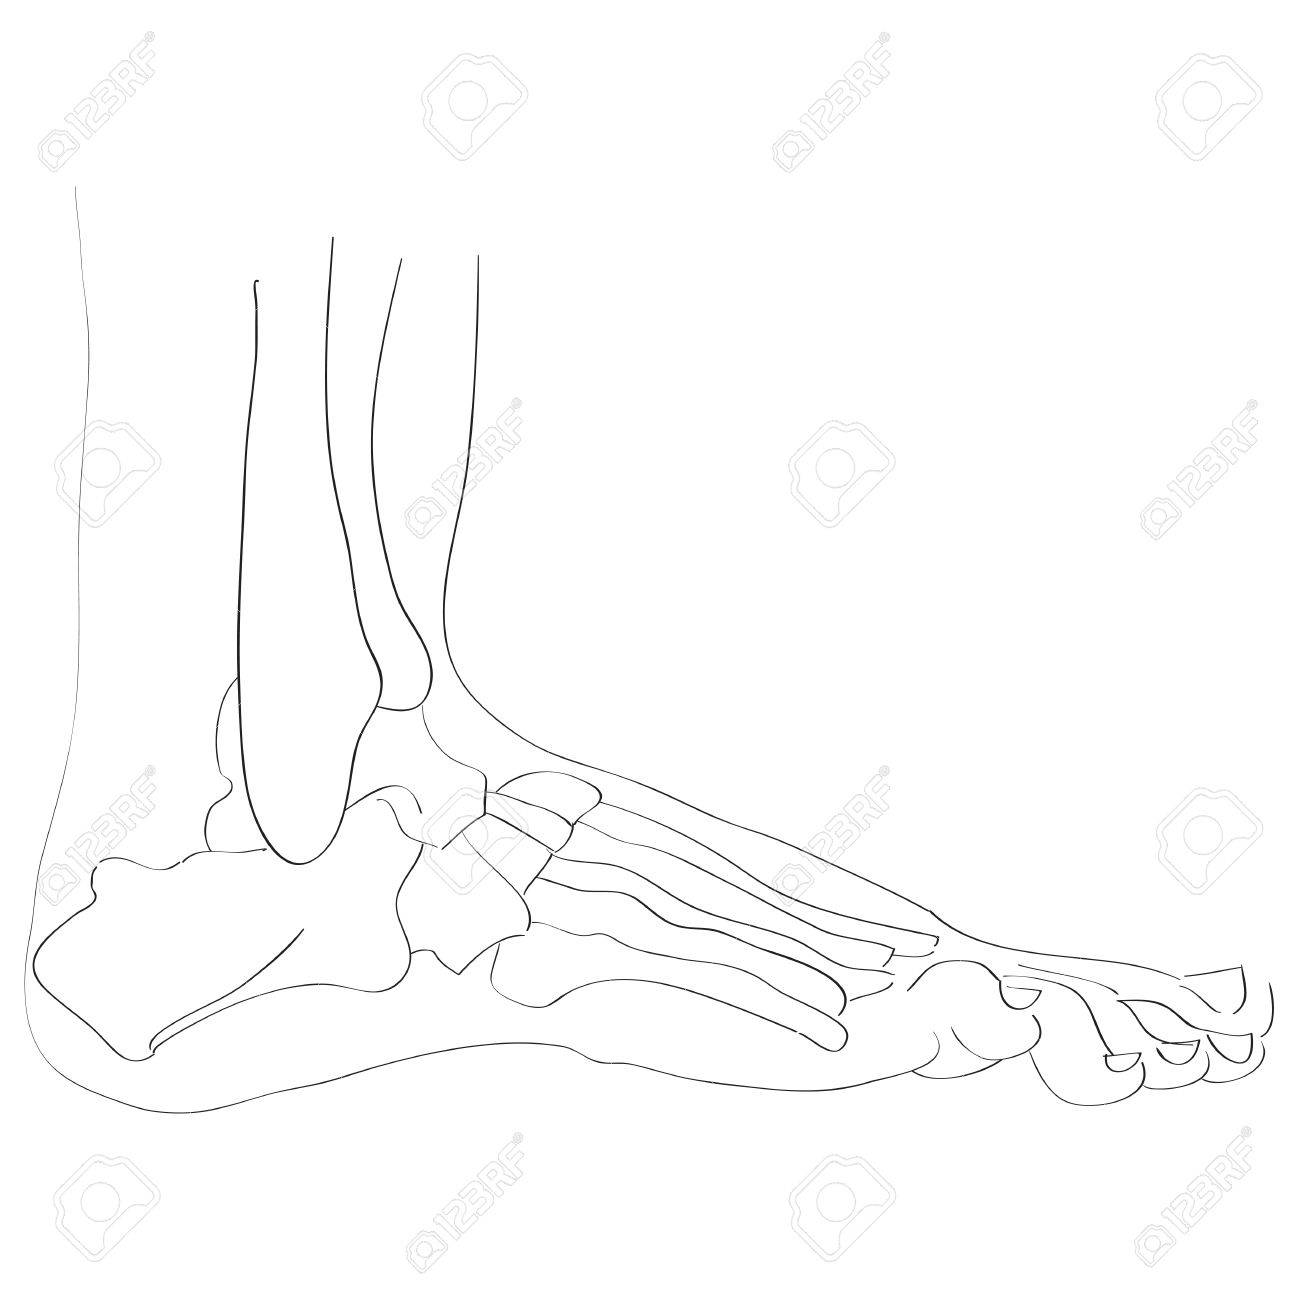 Illustration Of The Foot Bones Isolated On White, Artistic Anatomy ...